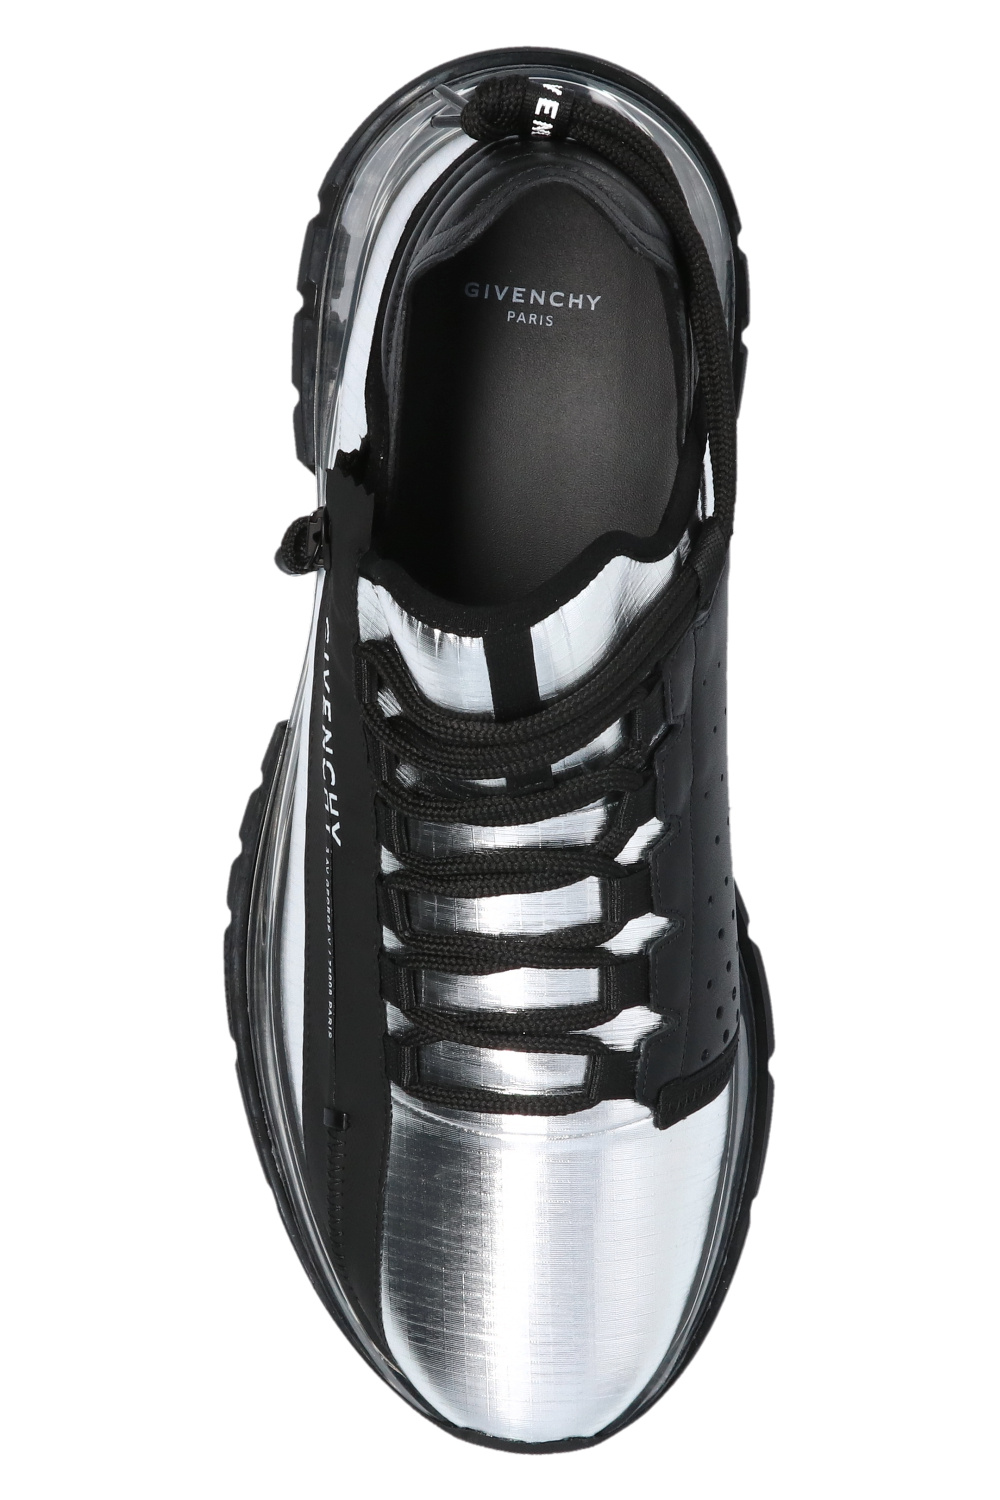 Givenchy 'Spectre' sneakers